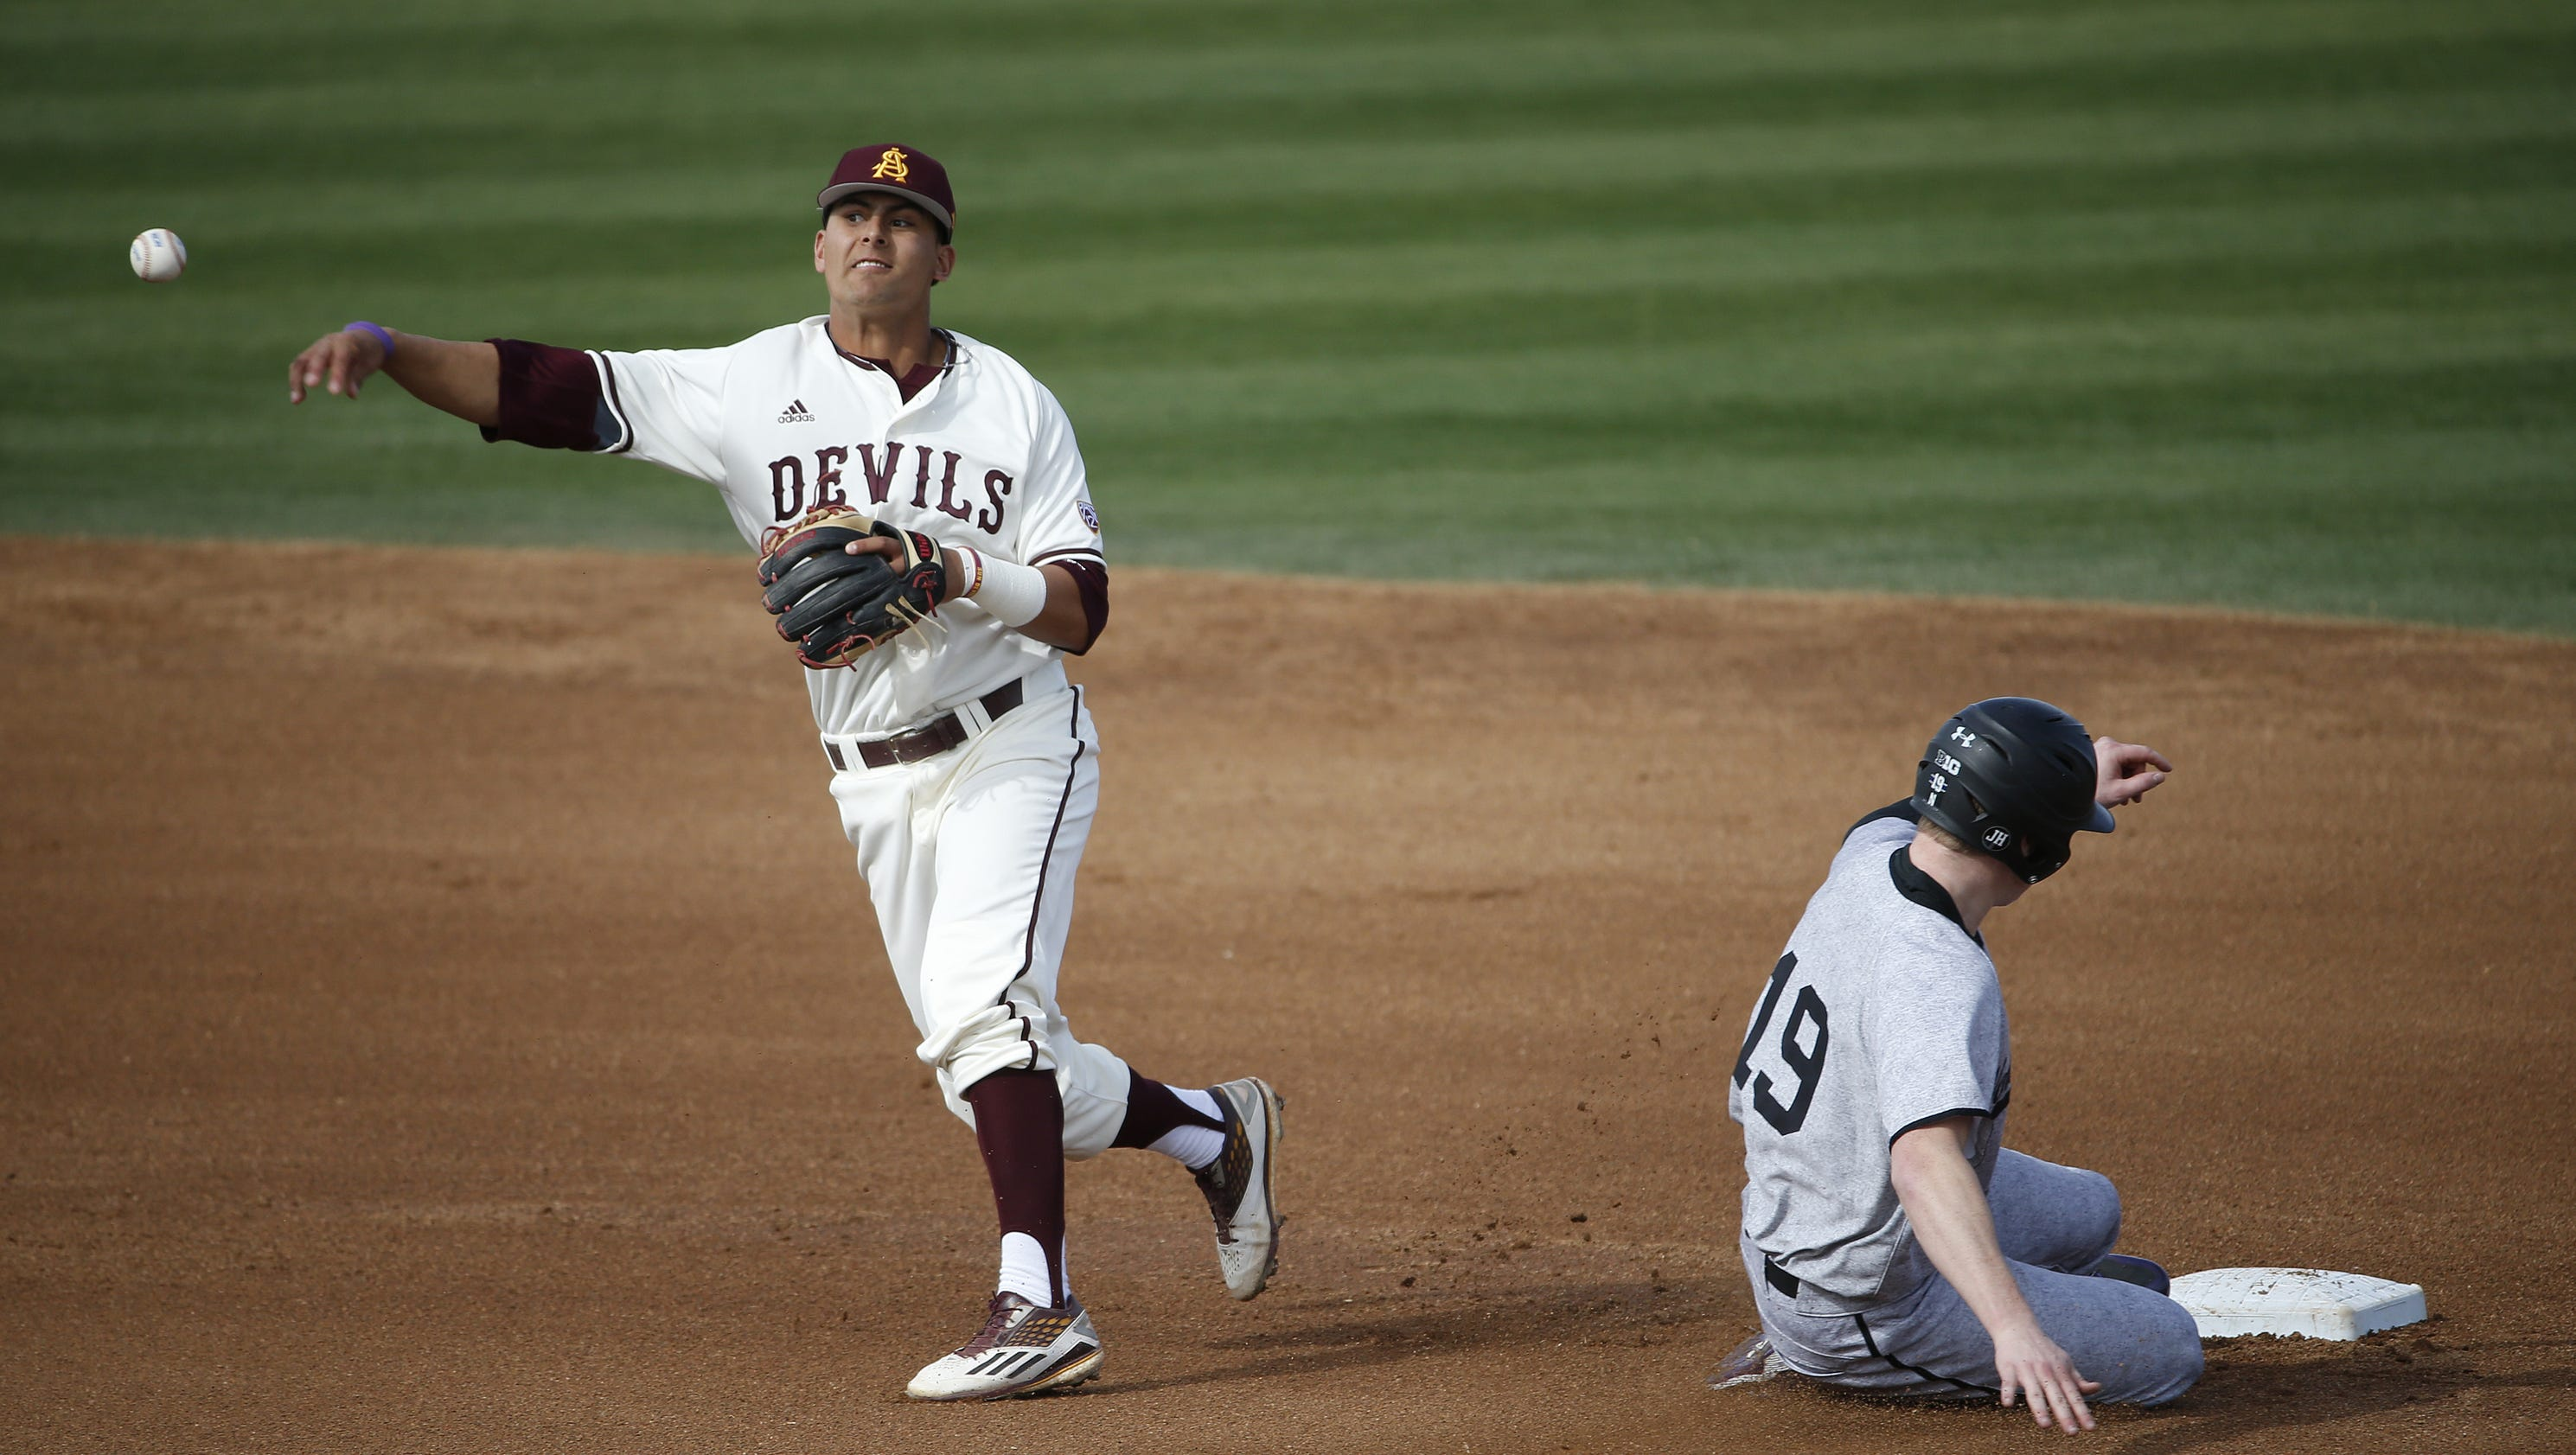 ASU baseball routed by UCLA in series finale